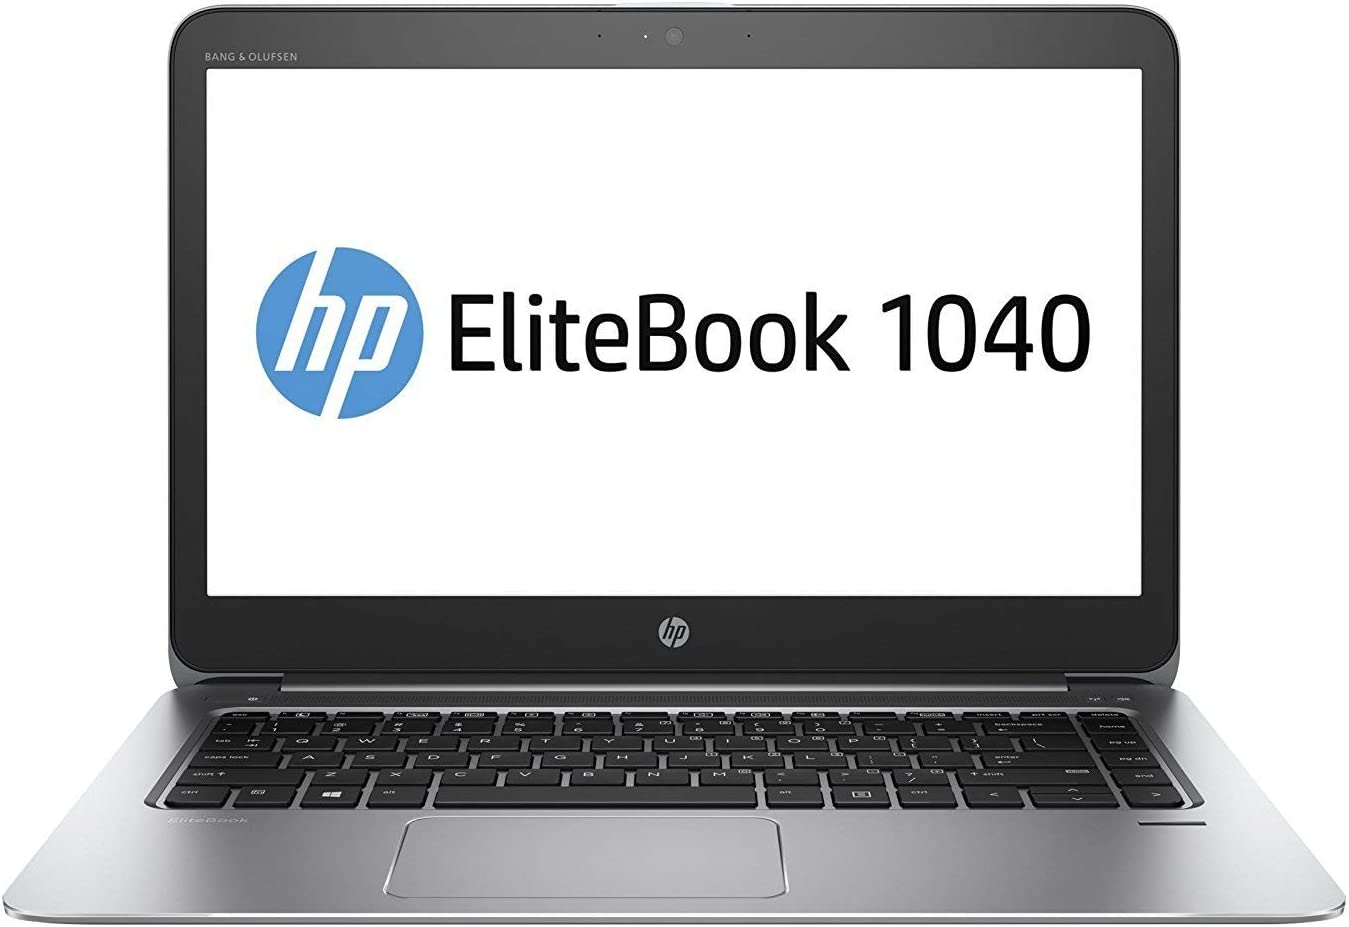 "HP Elitebook Folio 1040 G3 | 14"" FHD Display / Intel Core i7-6600U 2.6Ghz / 8GB / 256GB SSD / Fingerprint Scanner / Webcam / HDMI / Windows 10 Pro (Renewed)"